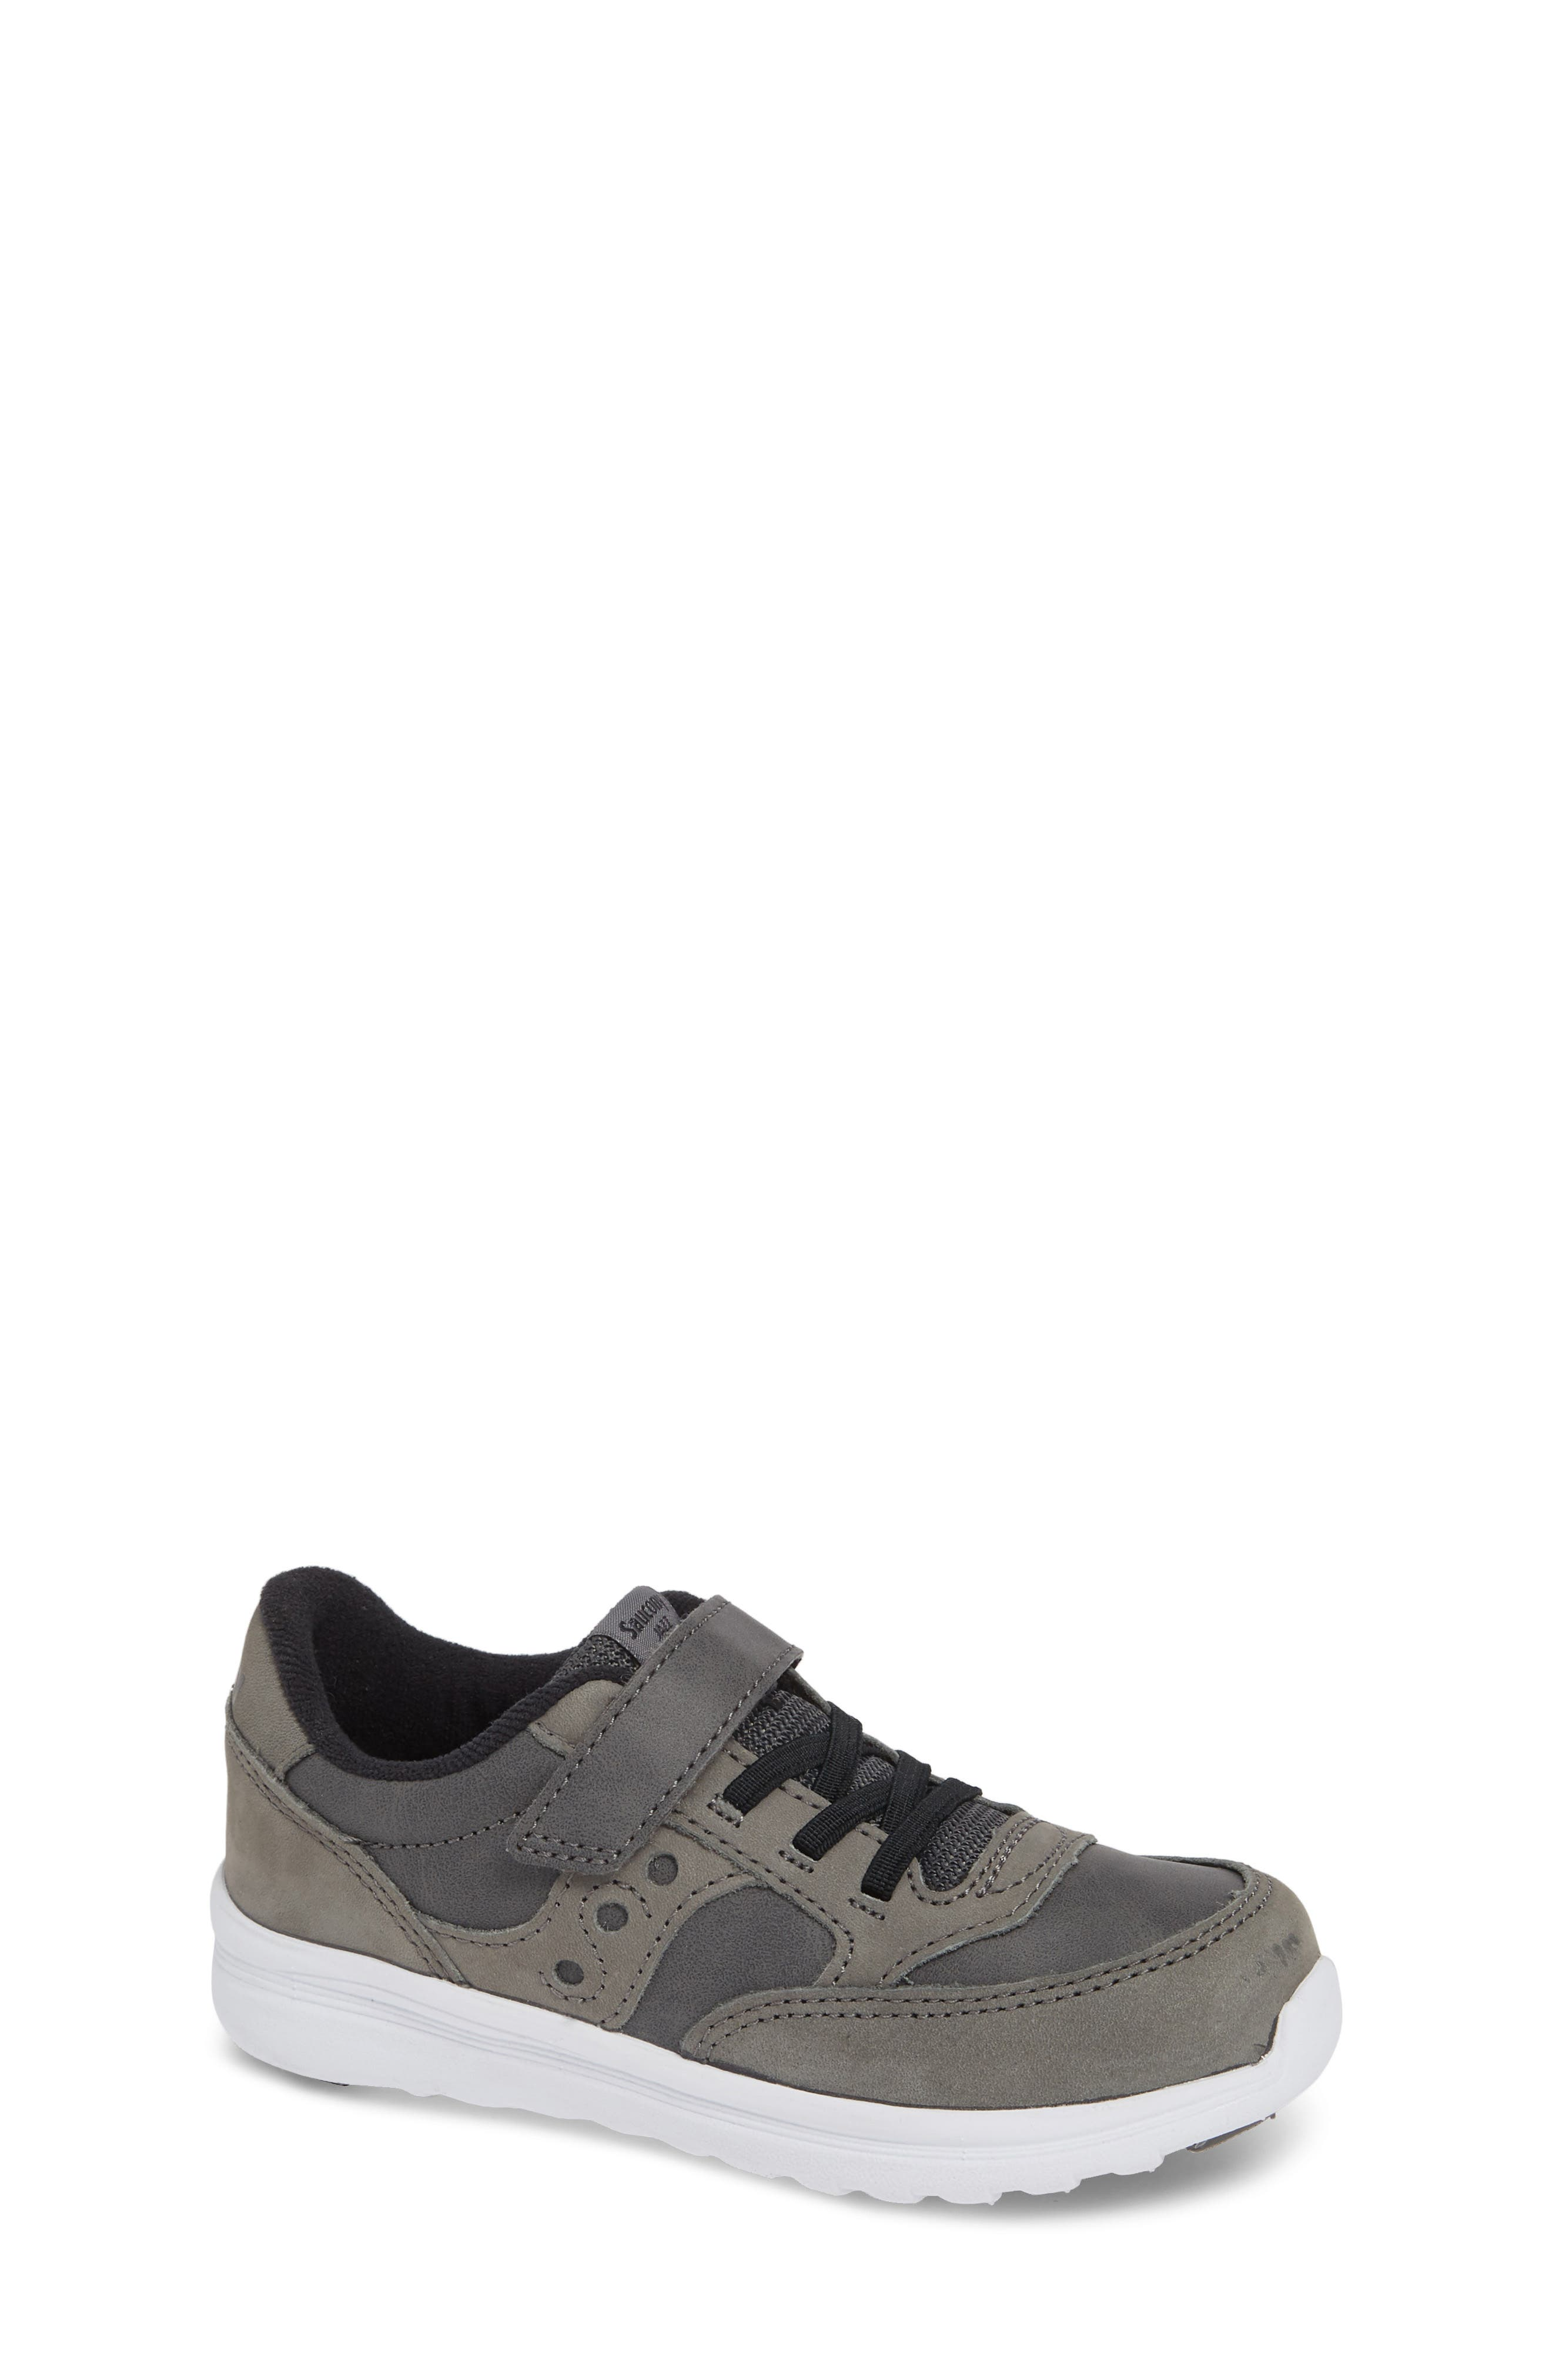 'Baby Jazz - Lite' Sneaker,                         Main,                         color, GREY LEATHER